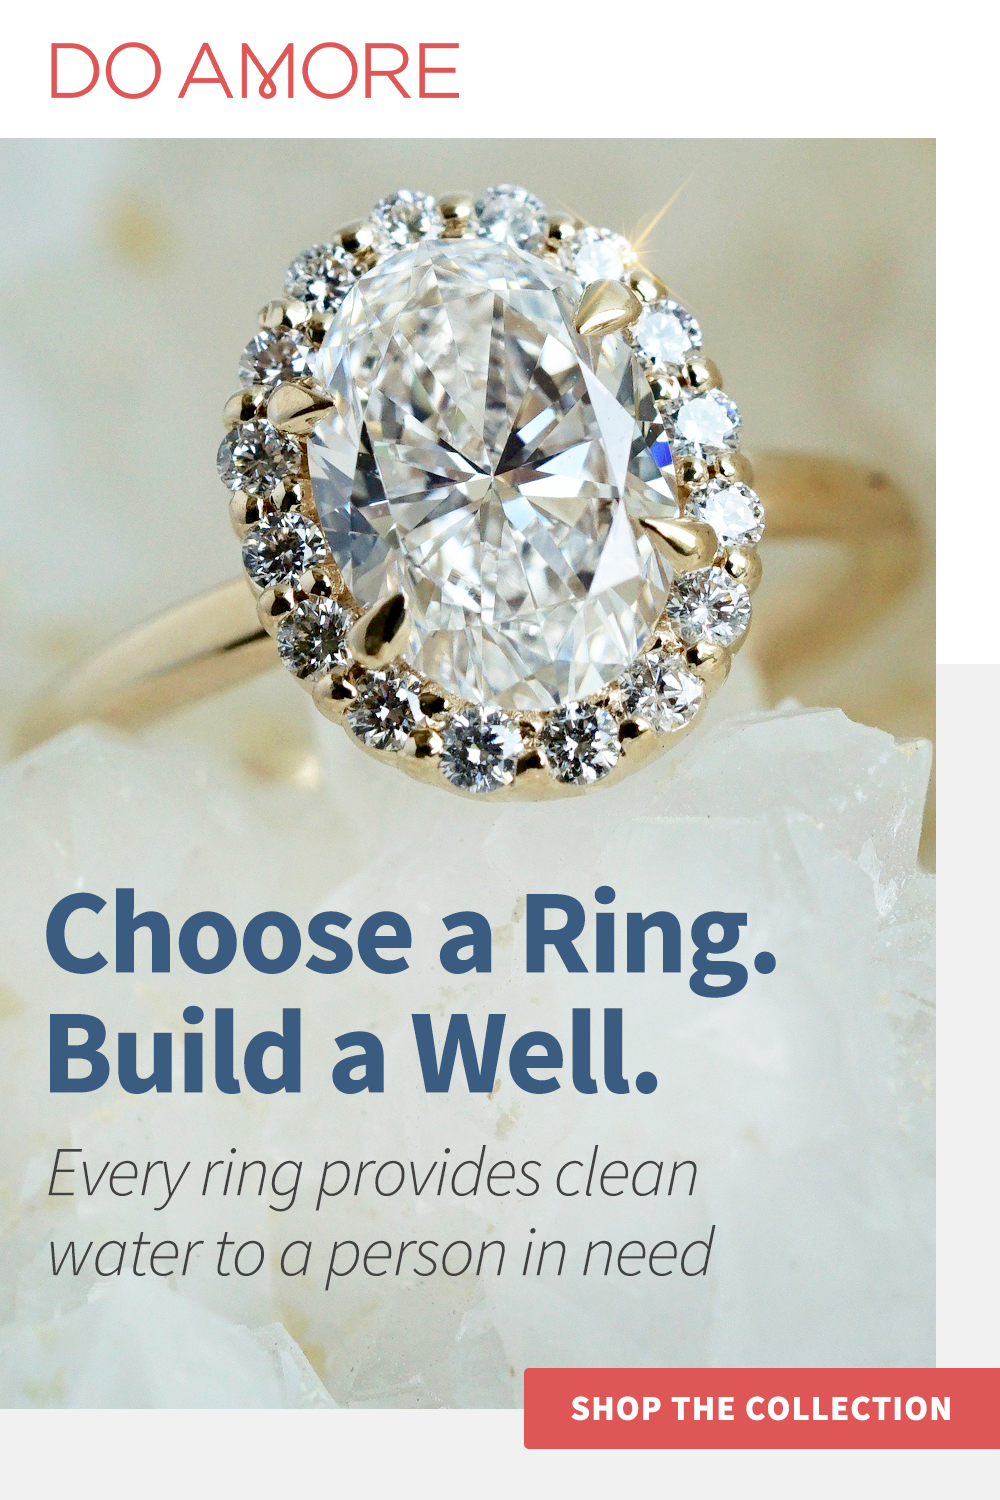 Every Ethically Crafted Ring Brings Clean Water To A Developing